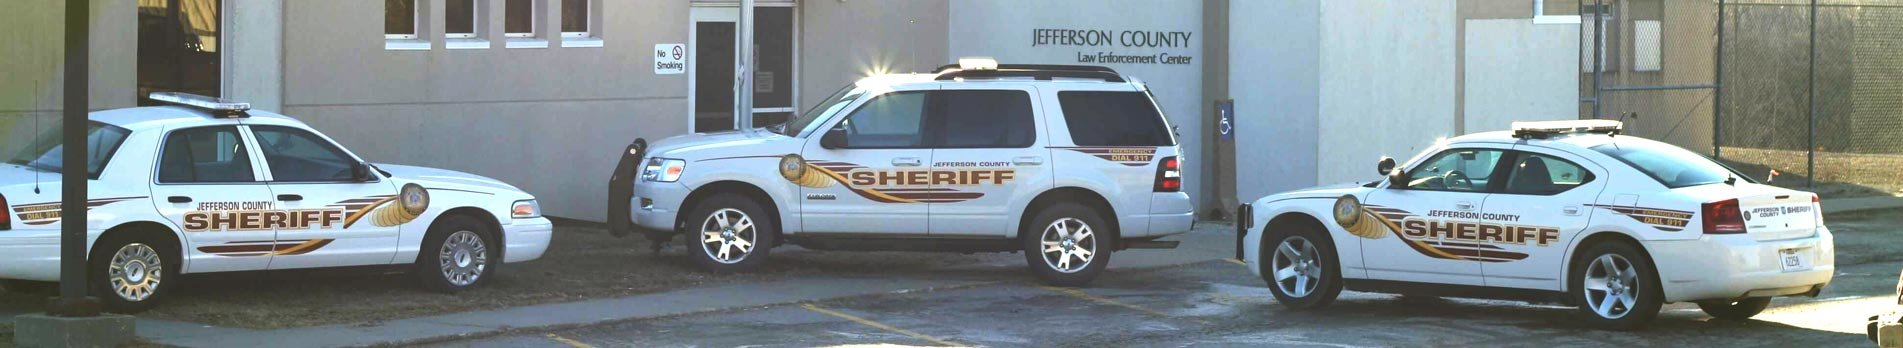 Jefferson County, Kansas Sheriff's Office Homepage Slideshow